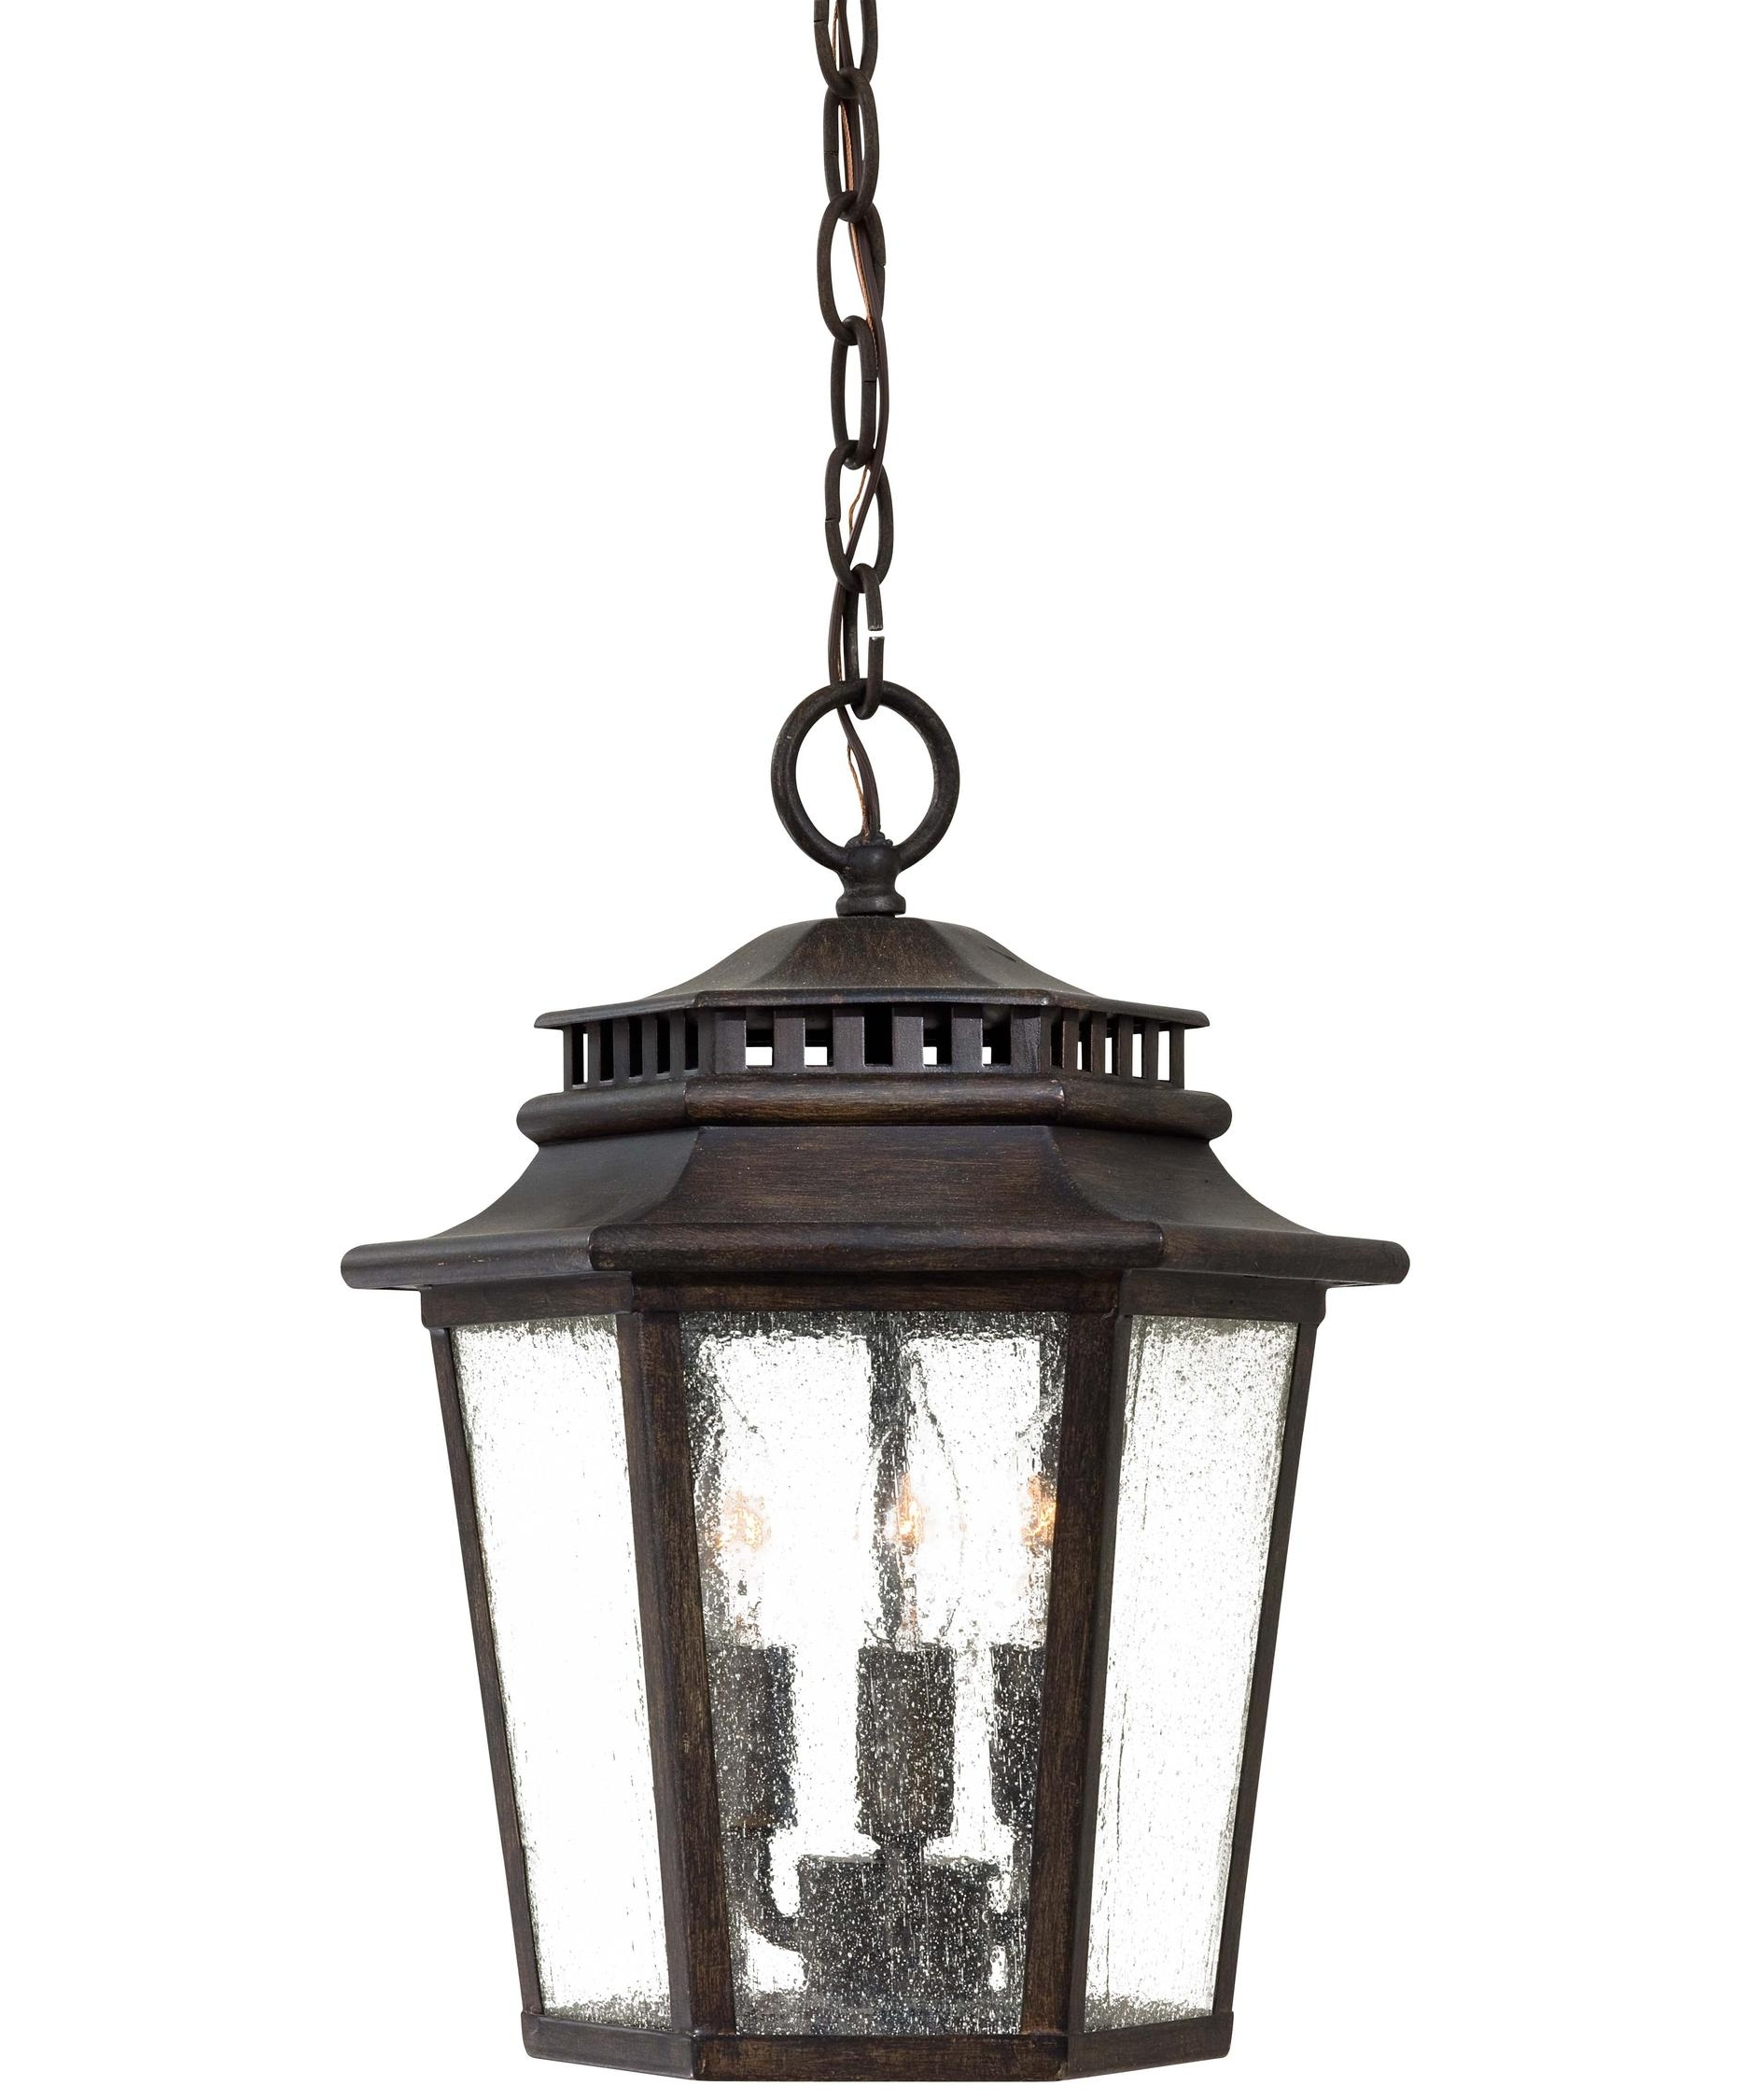 Motion Sensor Outdoor Hanging Lights Intended For Newest Large Hanging Outdoor Lights – Outdoor Designs (View 3 of 20)